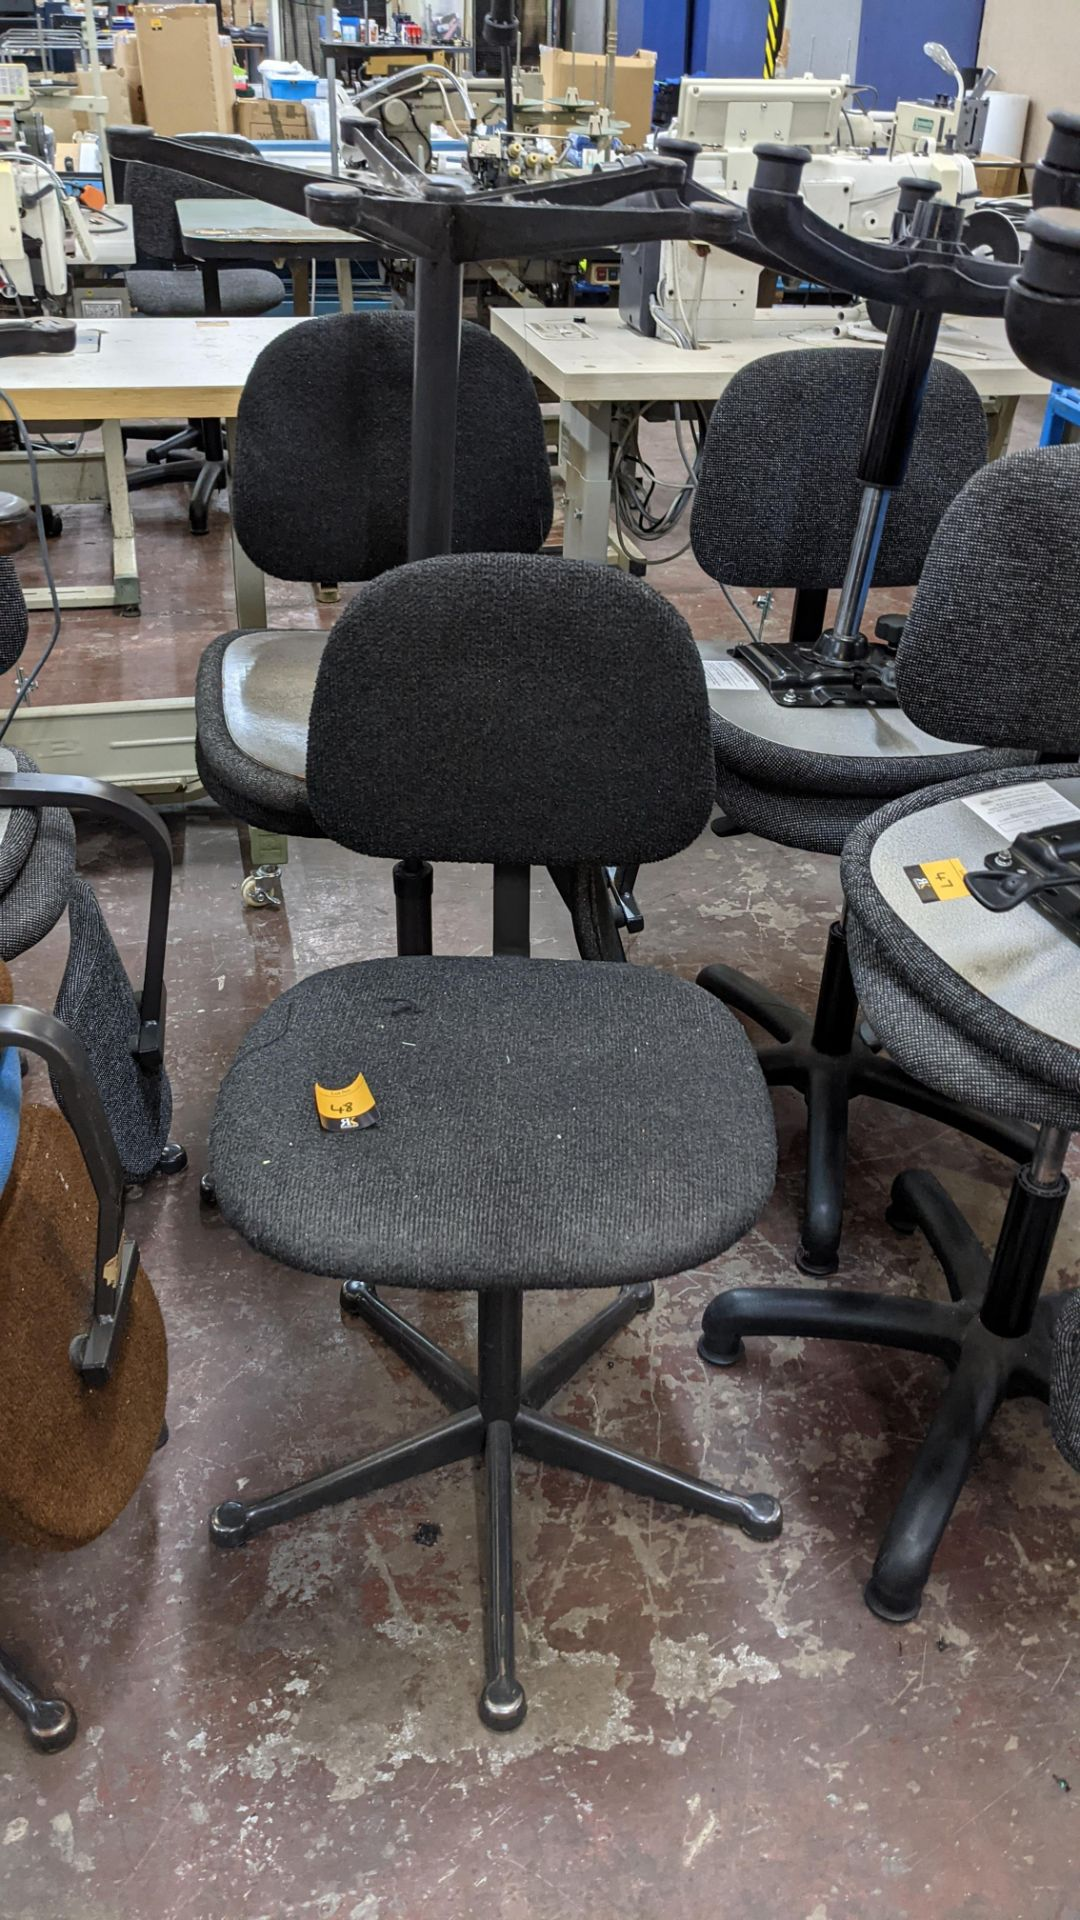 7 off assorted machinists chairs - Image 7 of 9